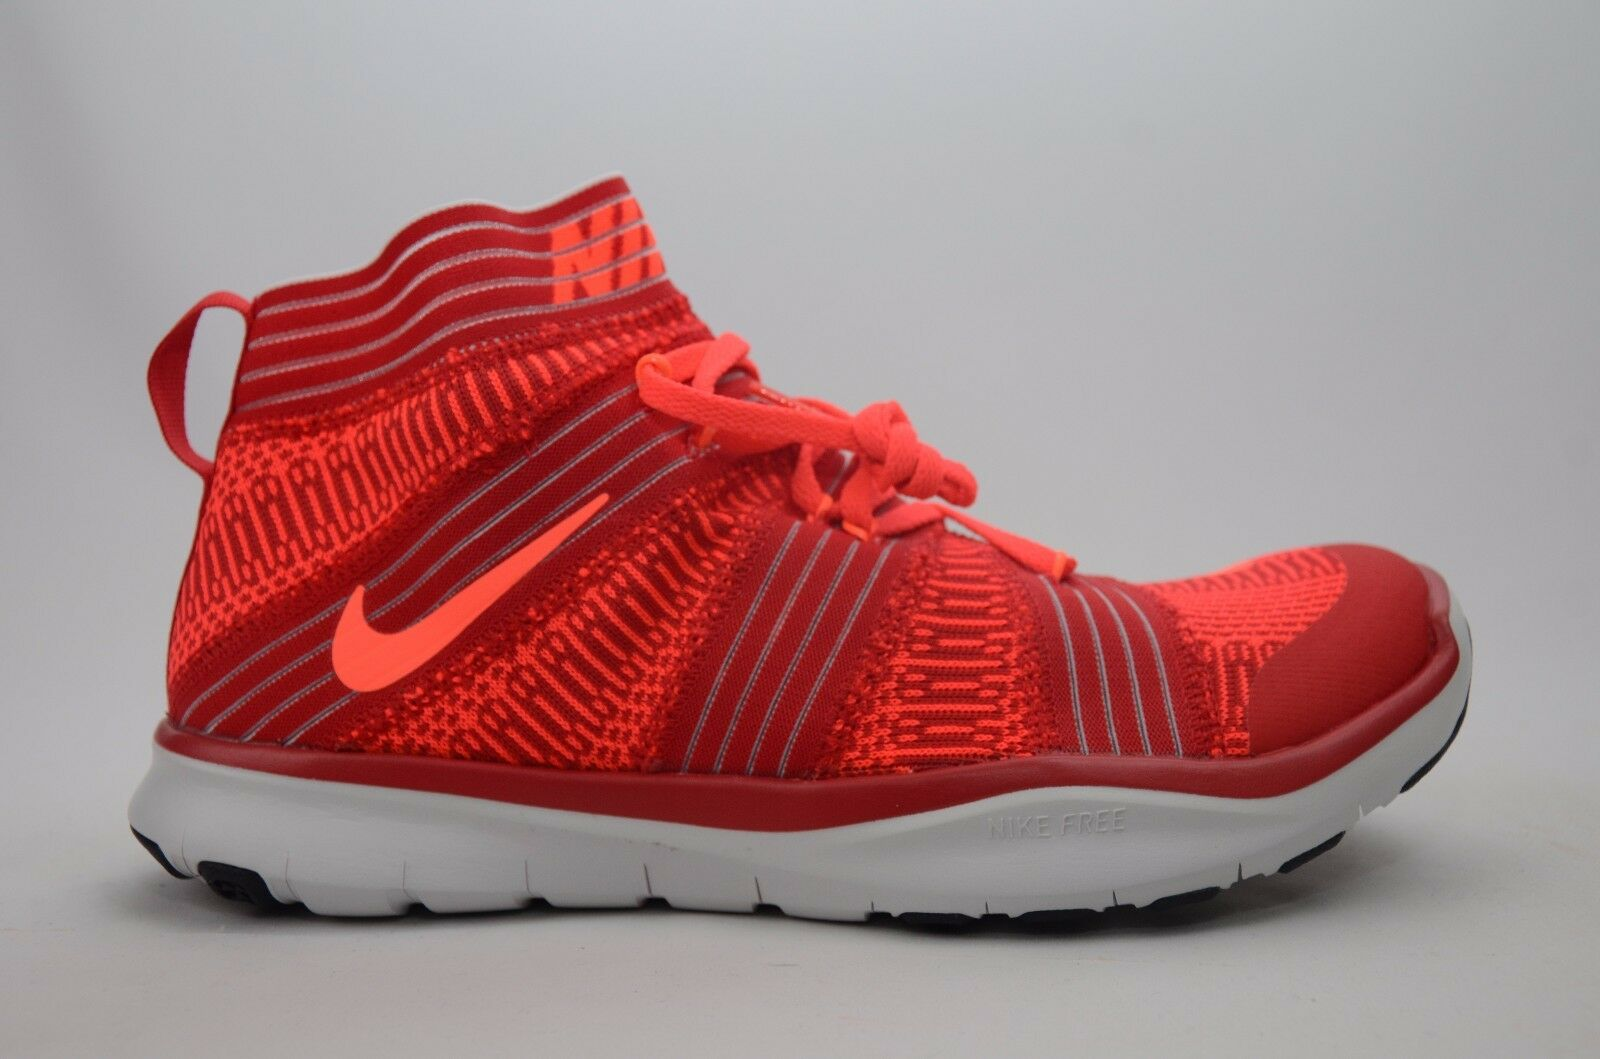 Nike Free Train Virtue Red orange Men's Size 8-11.5 New in Box 898052 600